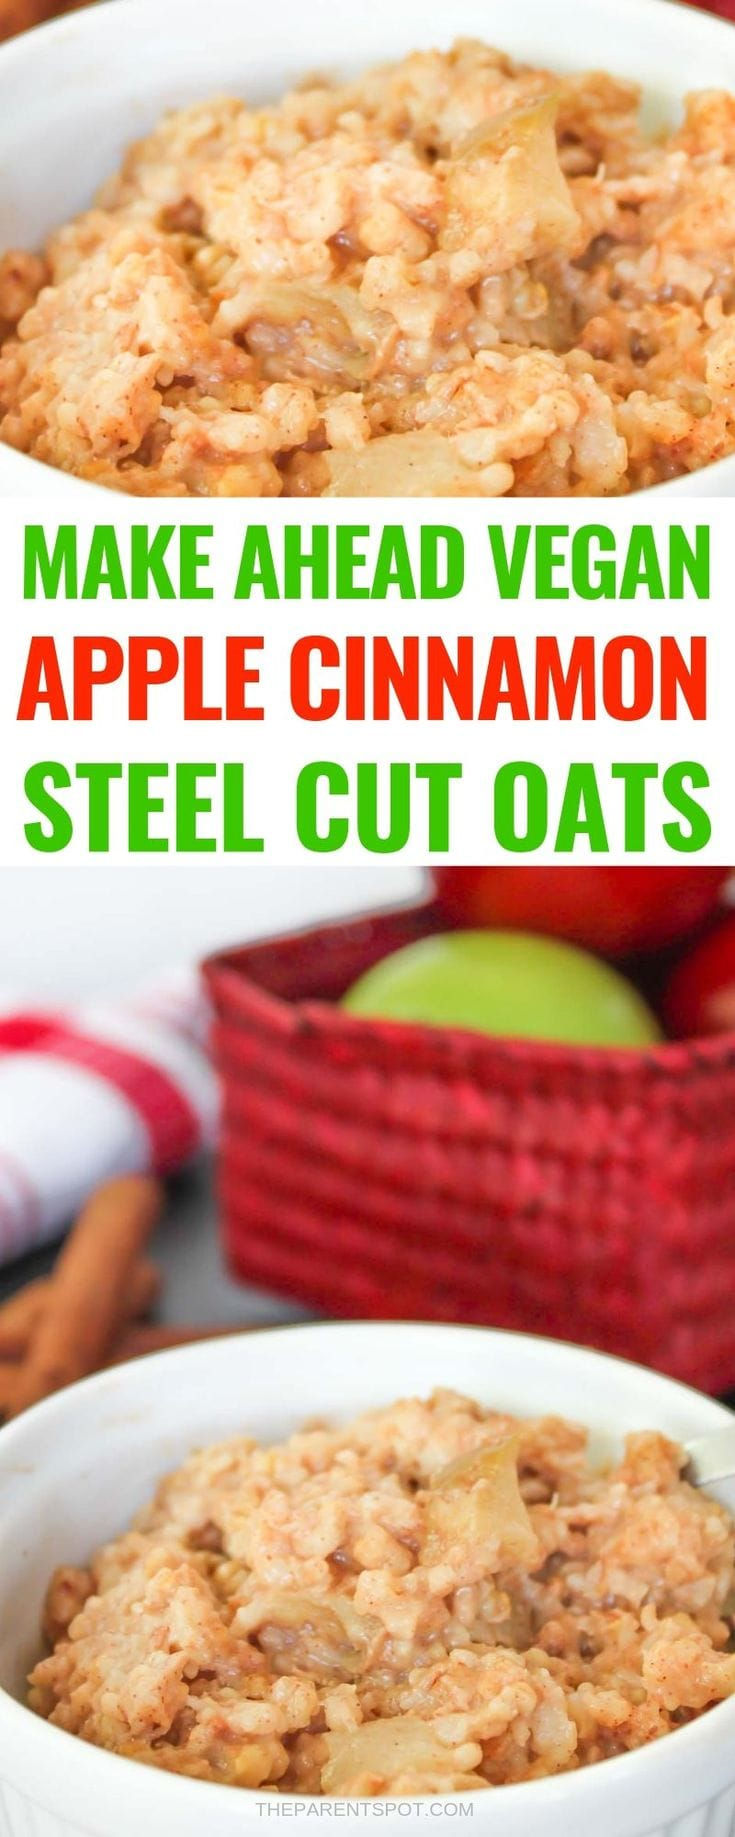 easy vegan apple cinnamon steel cut oats to make the night before